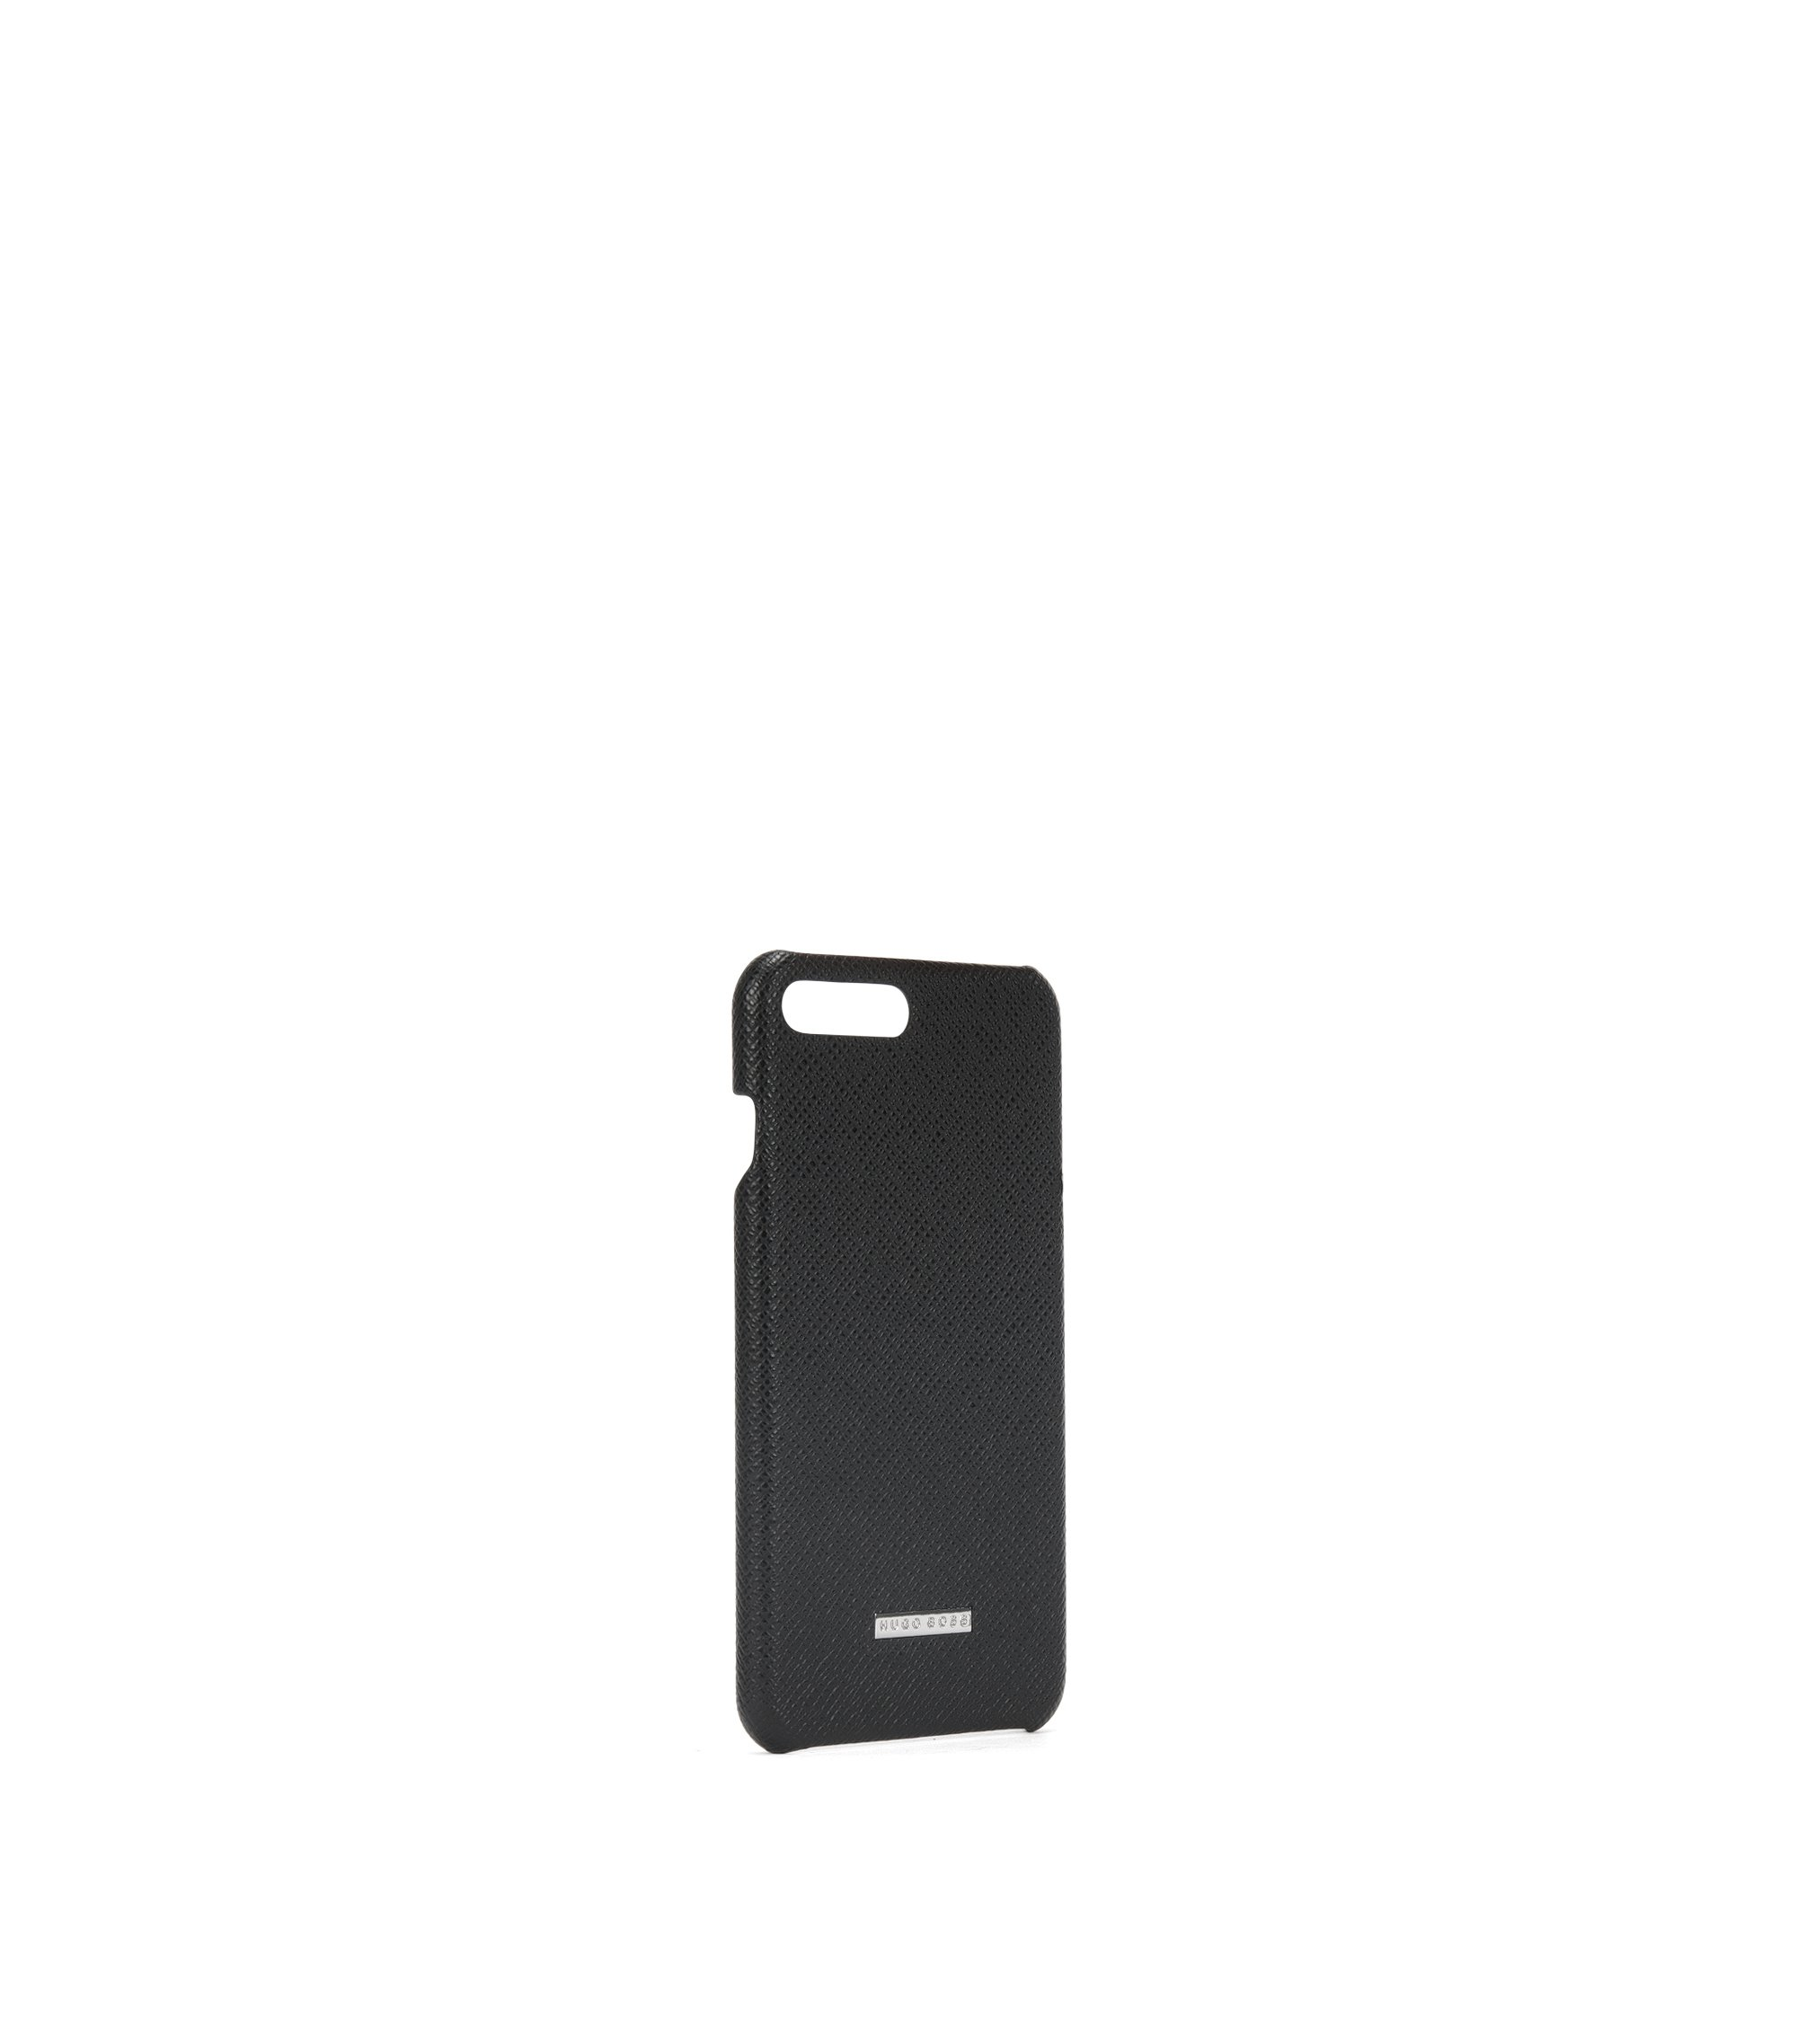 Signature Collection smartphone case in textured palmellato leather, Black